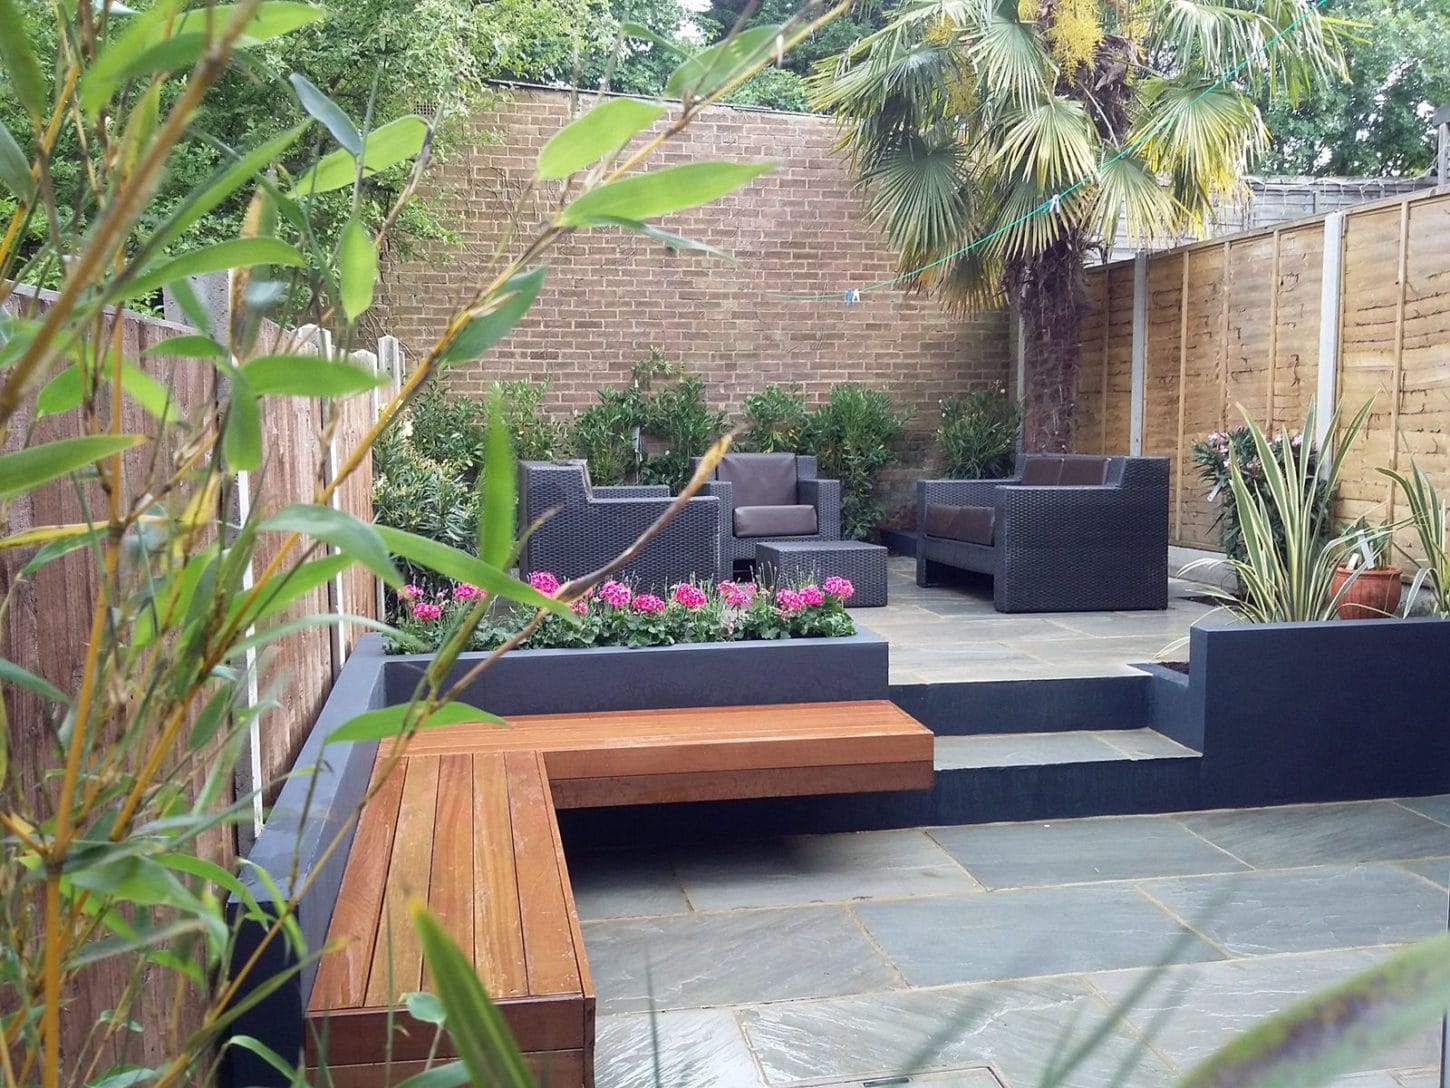 28+ [ modern backyard ideas ] | modern backyard design ideas